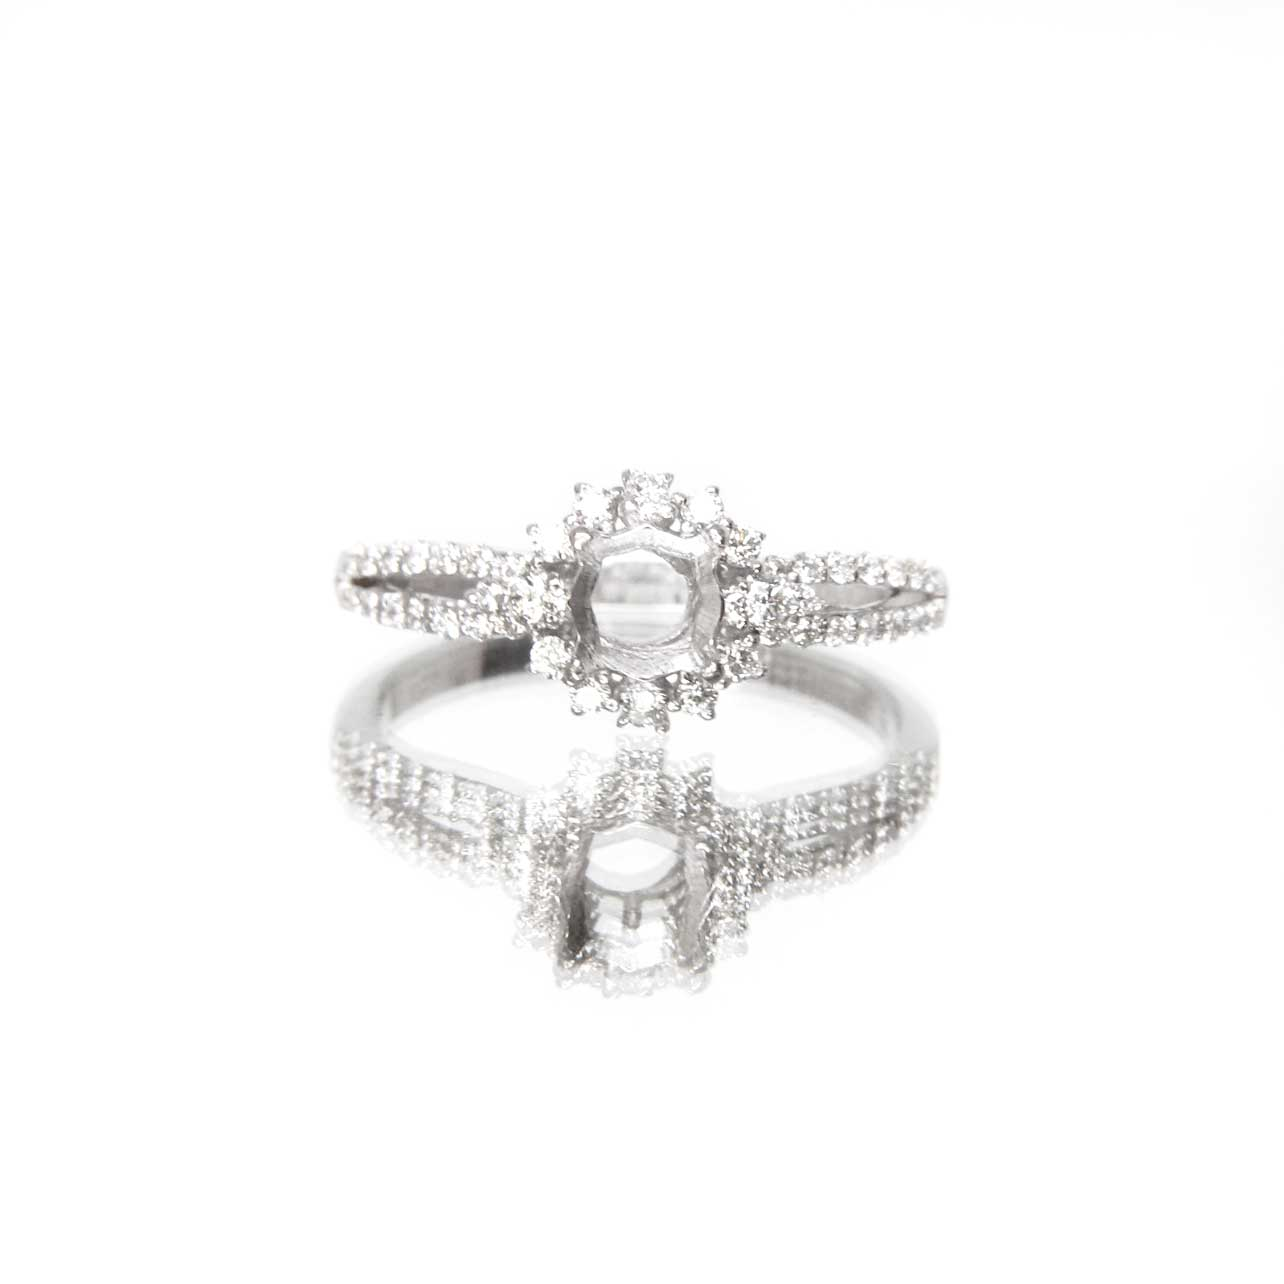 Diamond Series Ring - Sunburst Ring Setting Only (US 7, 18K White Gold) - Tessellate.Co